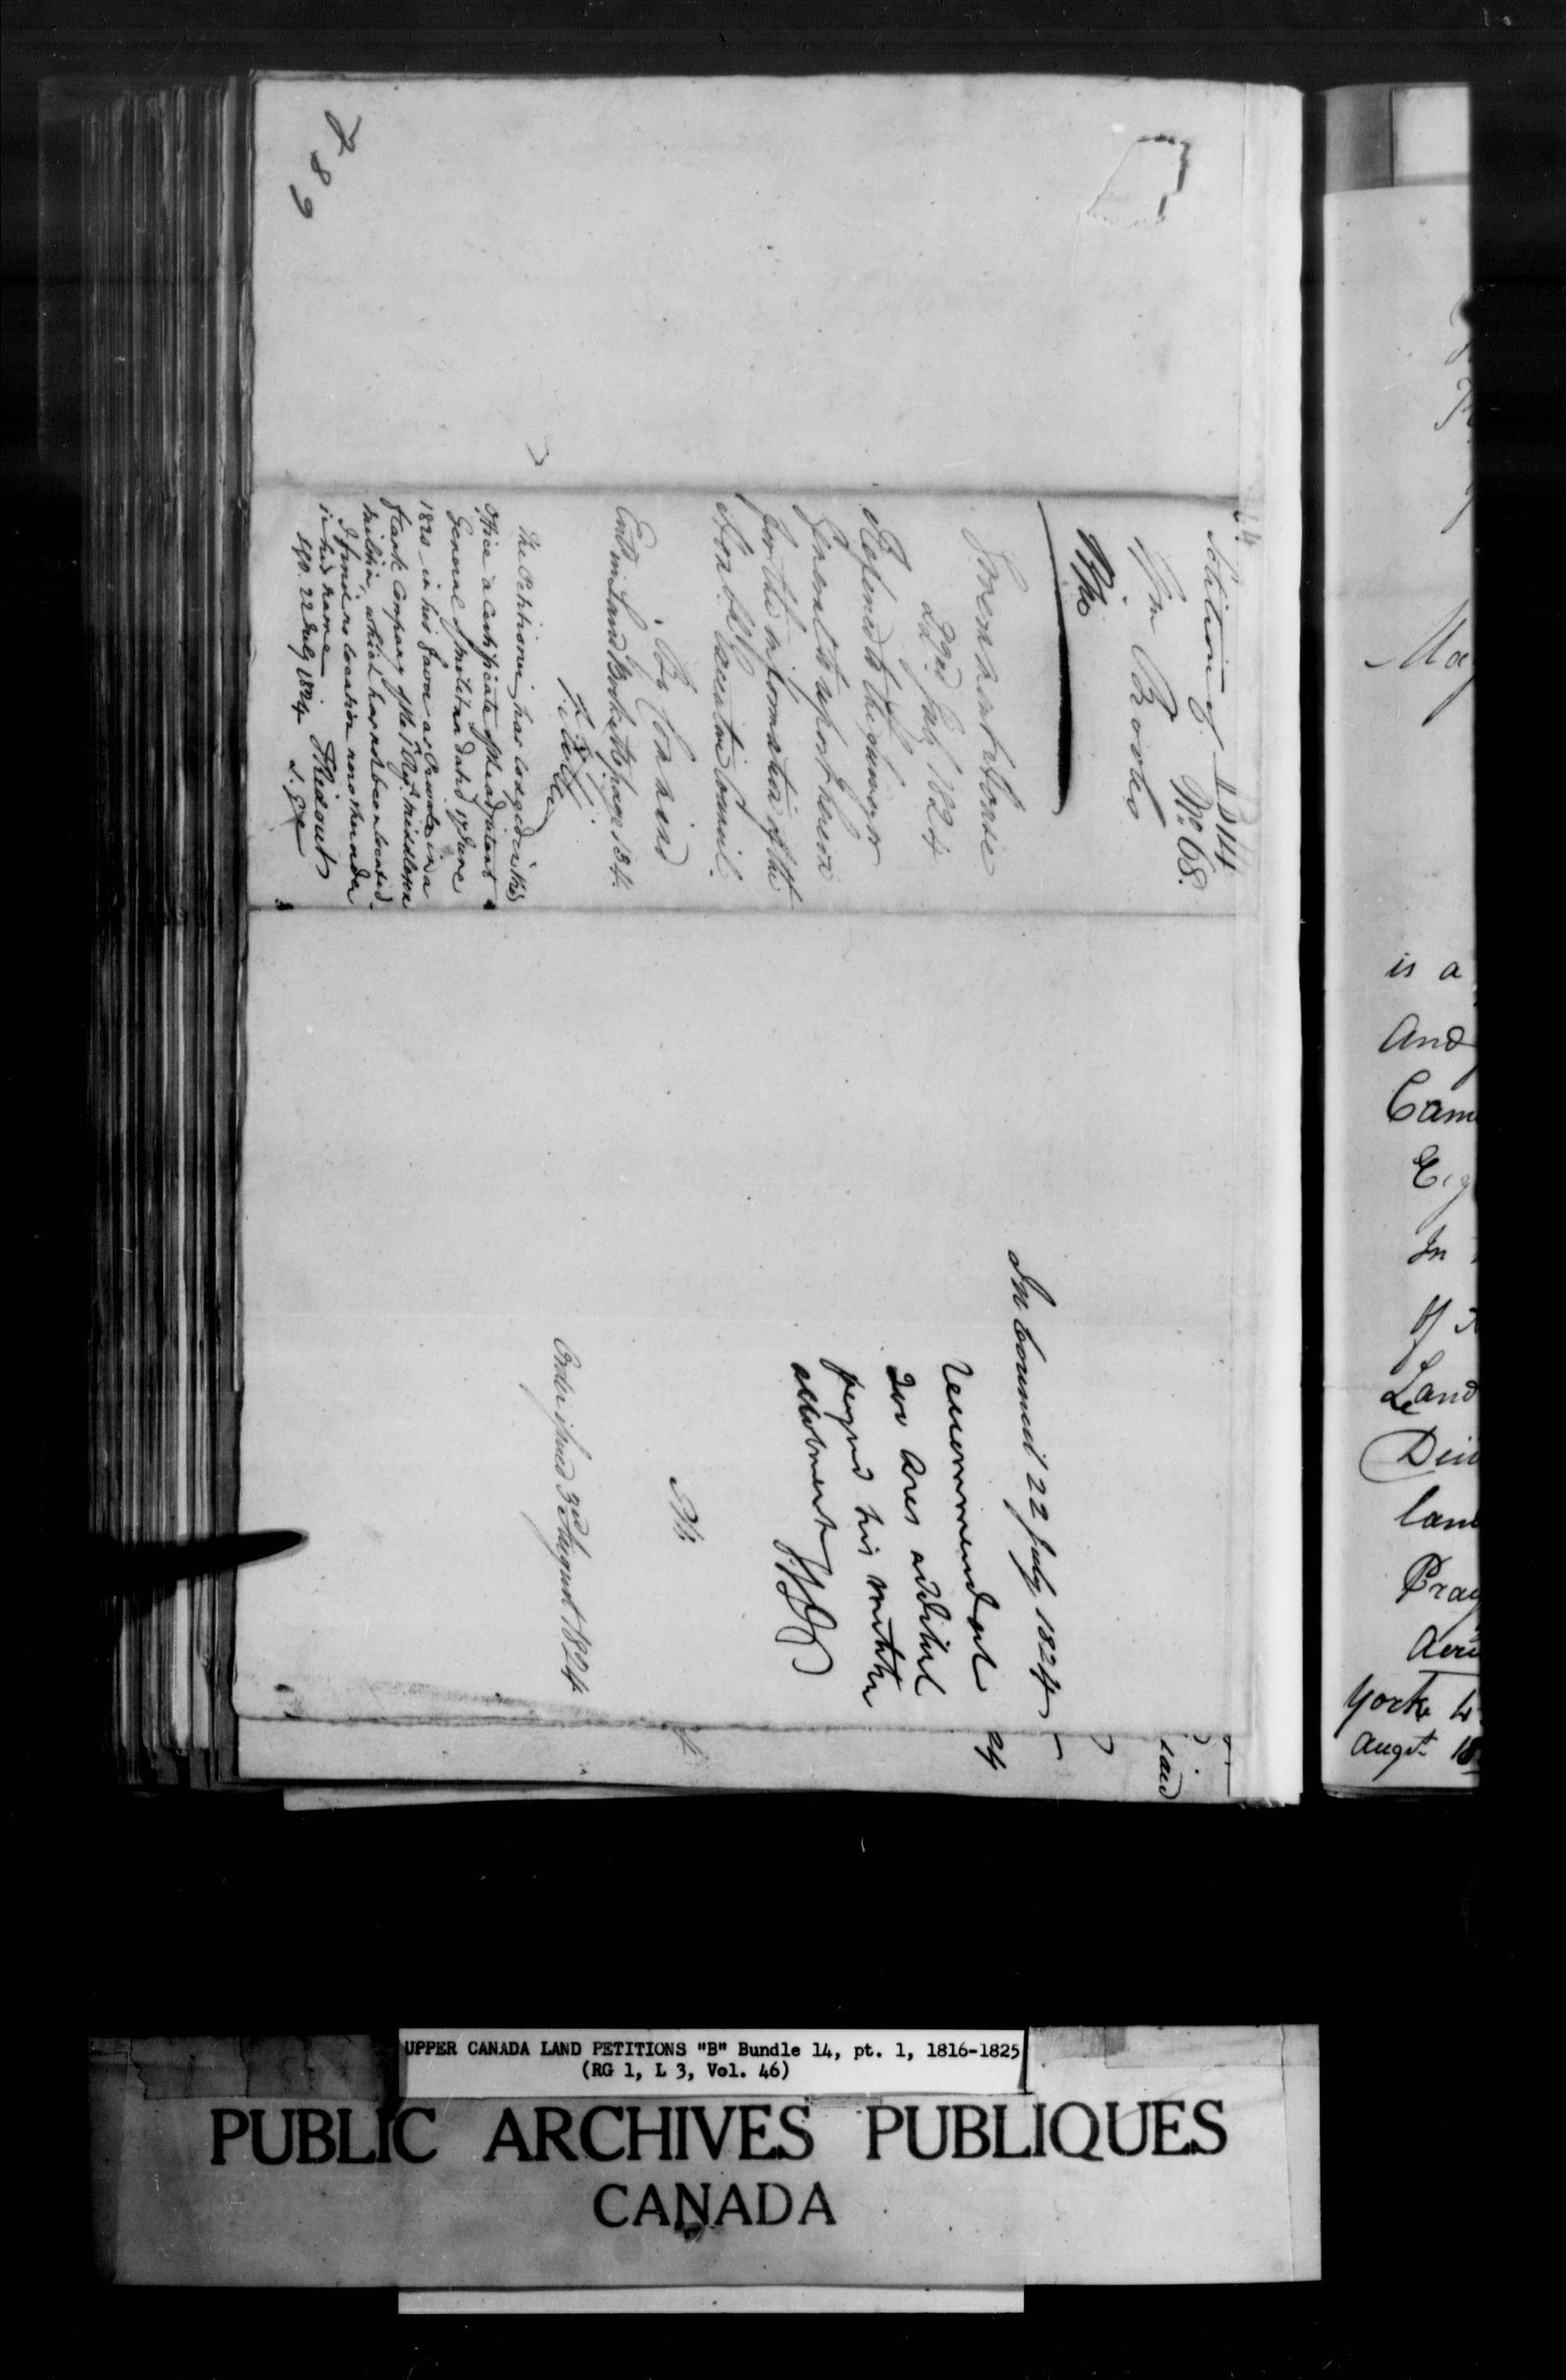 Title: Upper Canada Land Petitions (1763-1865) - Mikan Number: 205131 - Microform: c-1626